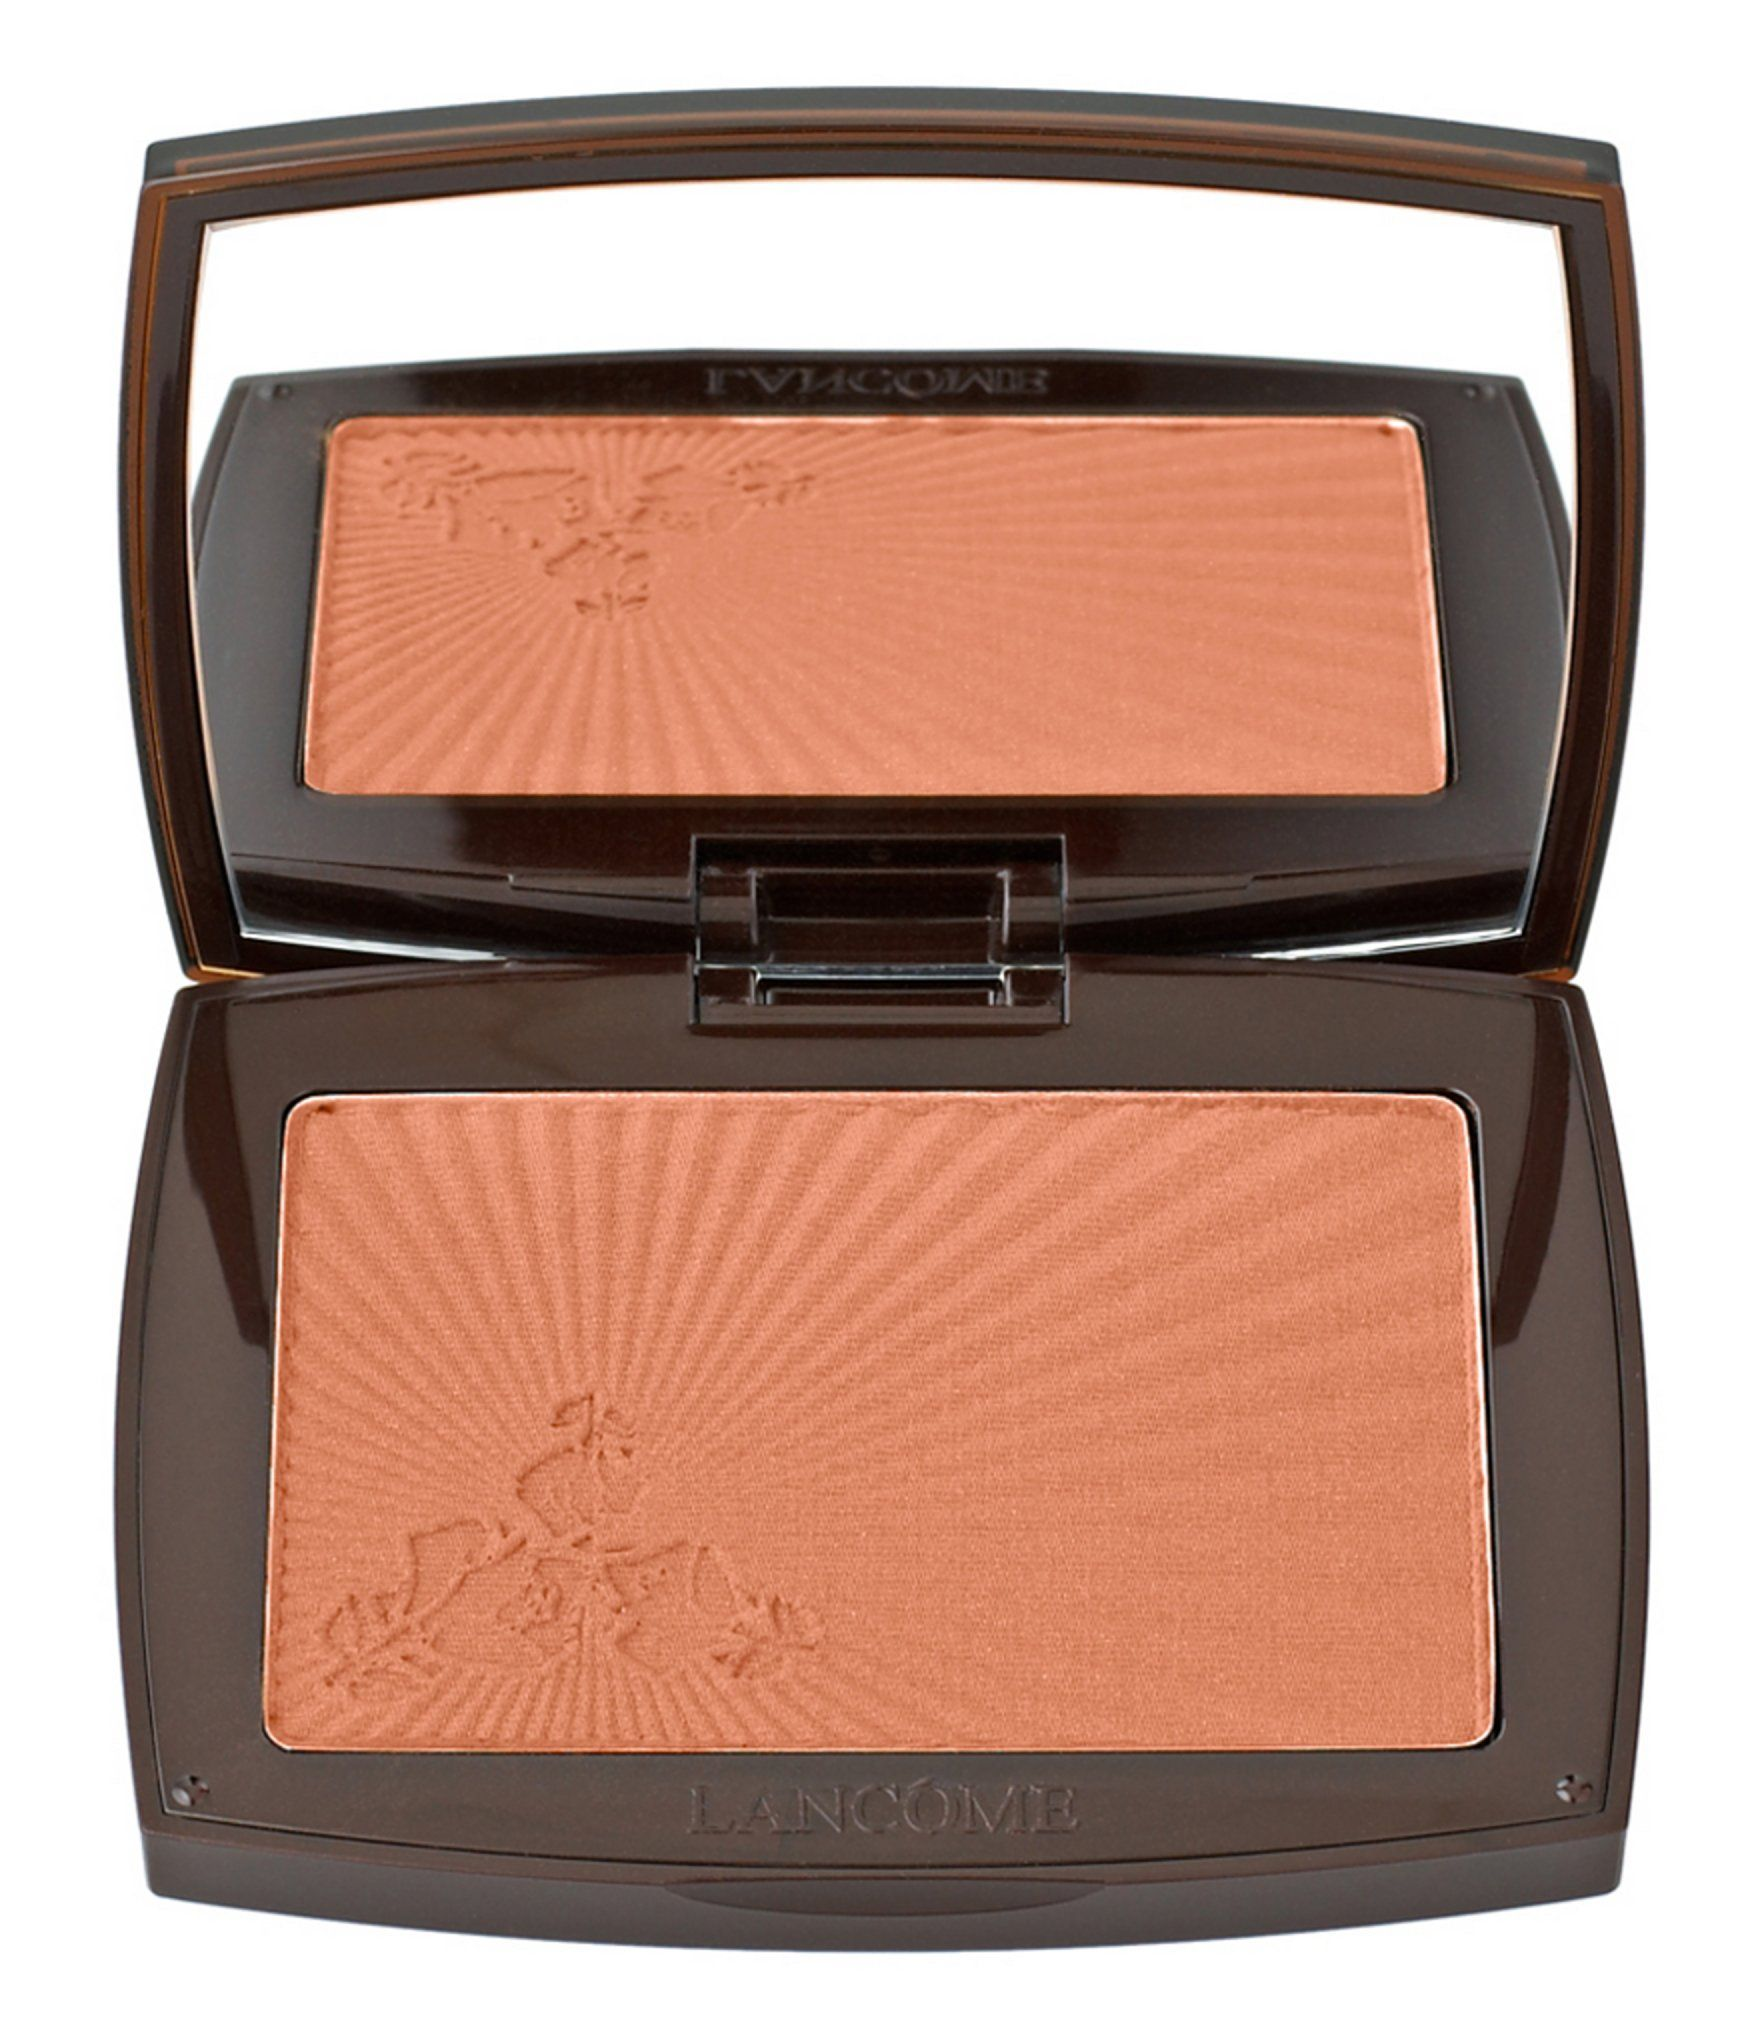 Lancome Star Bronzer Long Lasting Bronzing Powder Natural Glow | Dillard's